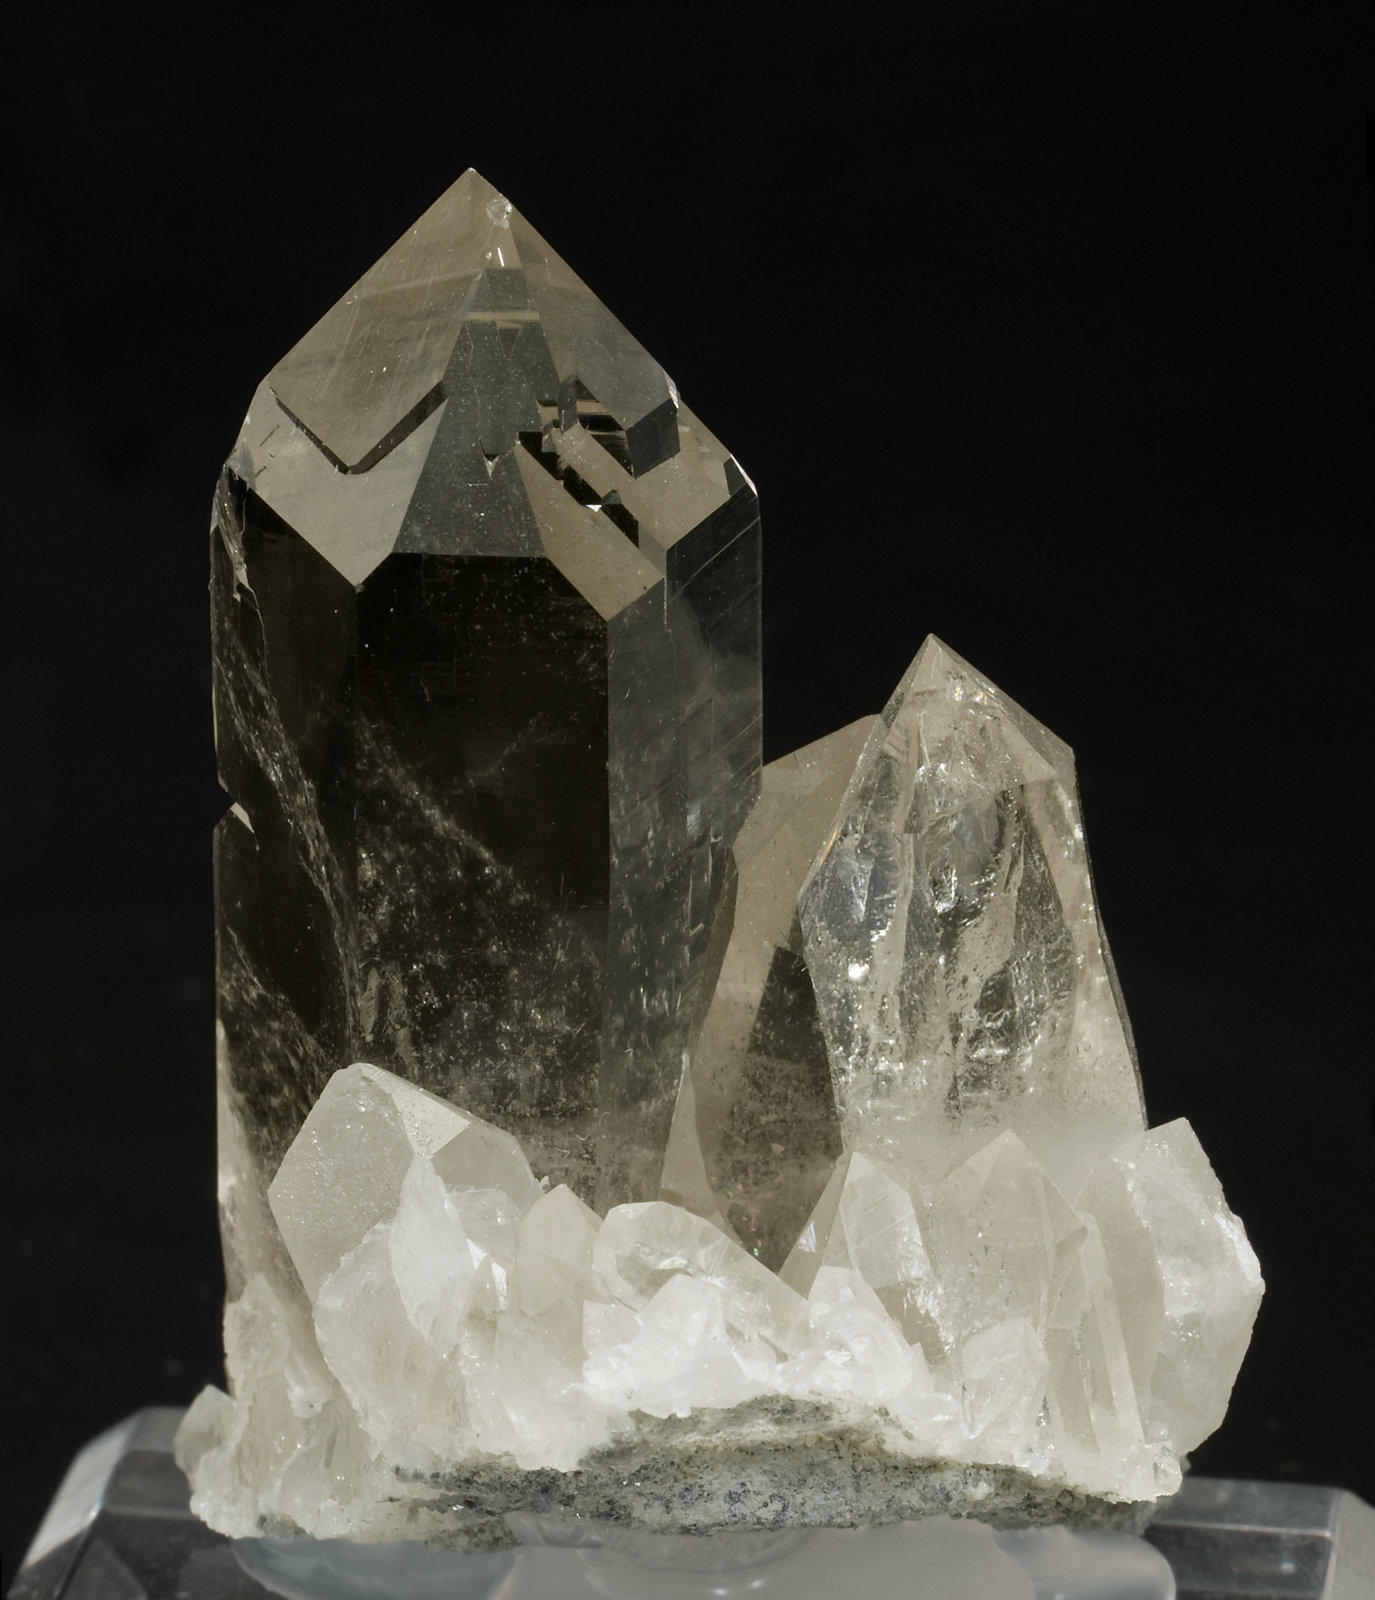 specimens/s_imagesV5/Quartz-RD14V5r.jpg